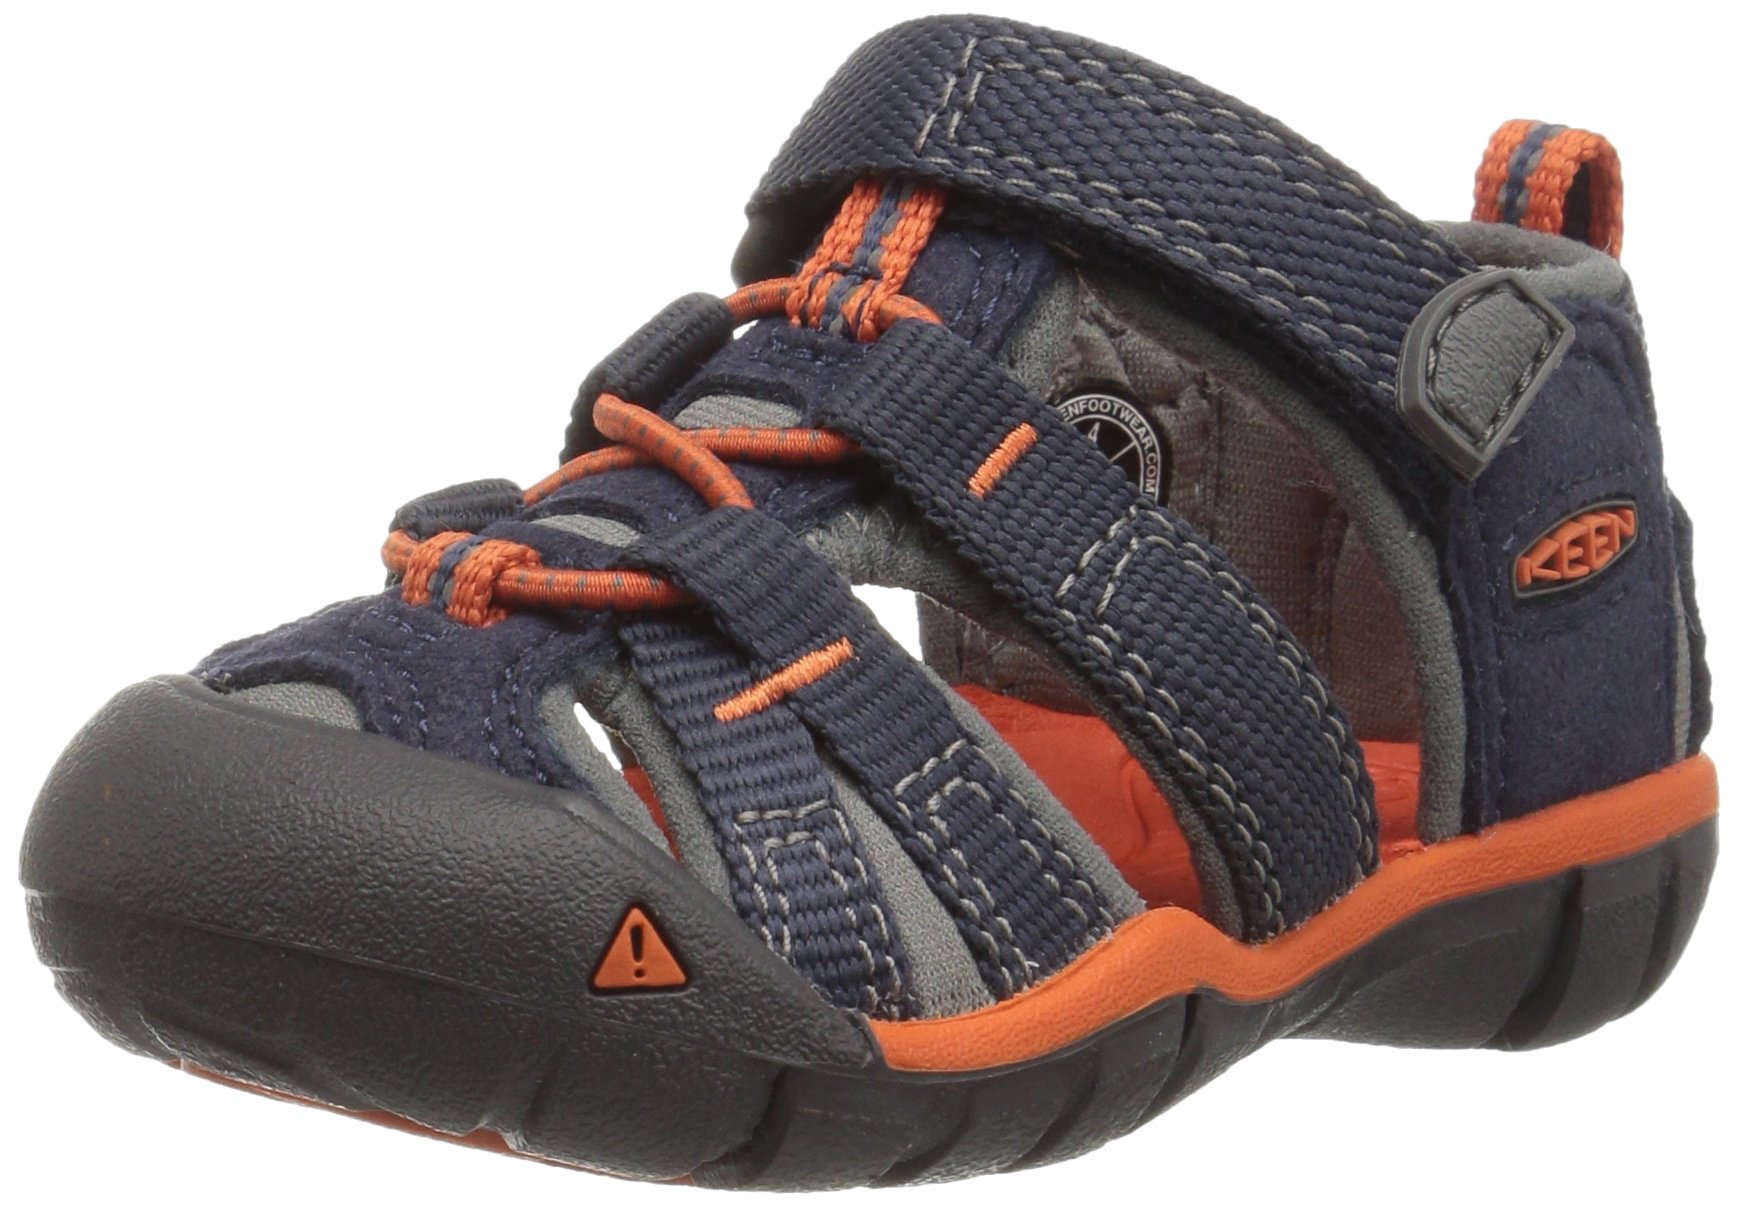 KEEN Kids' Seacamp II CNX-T Sandal, Dress Blue/Koi, 5 M US Toddler